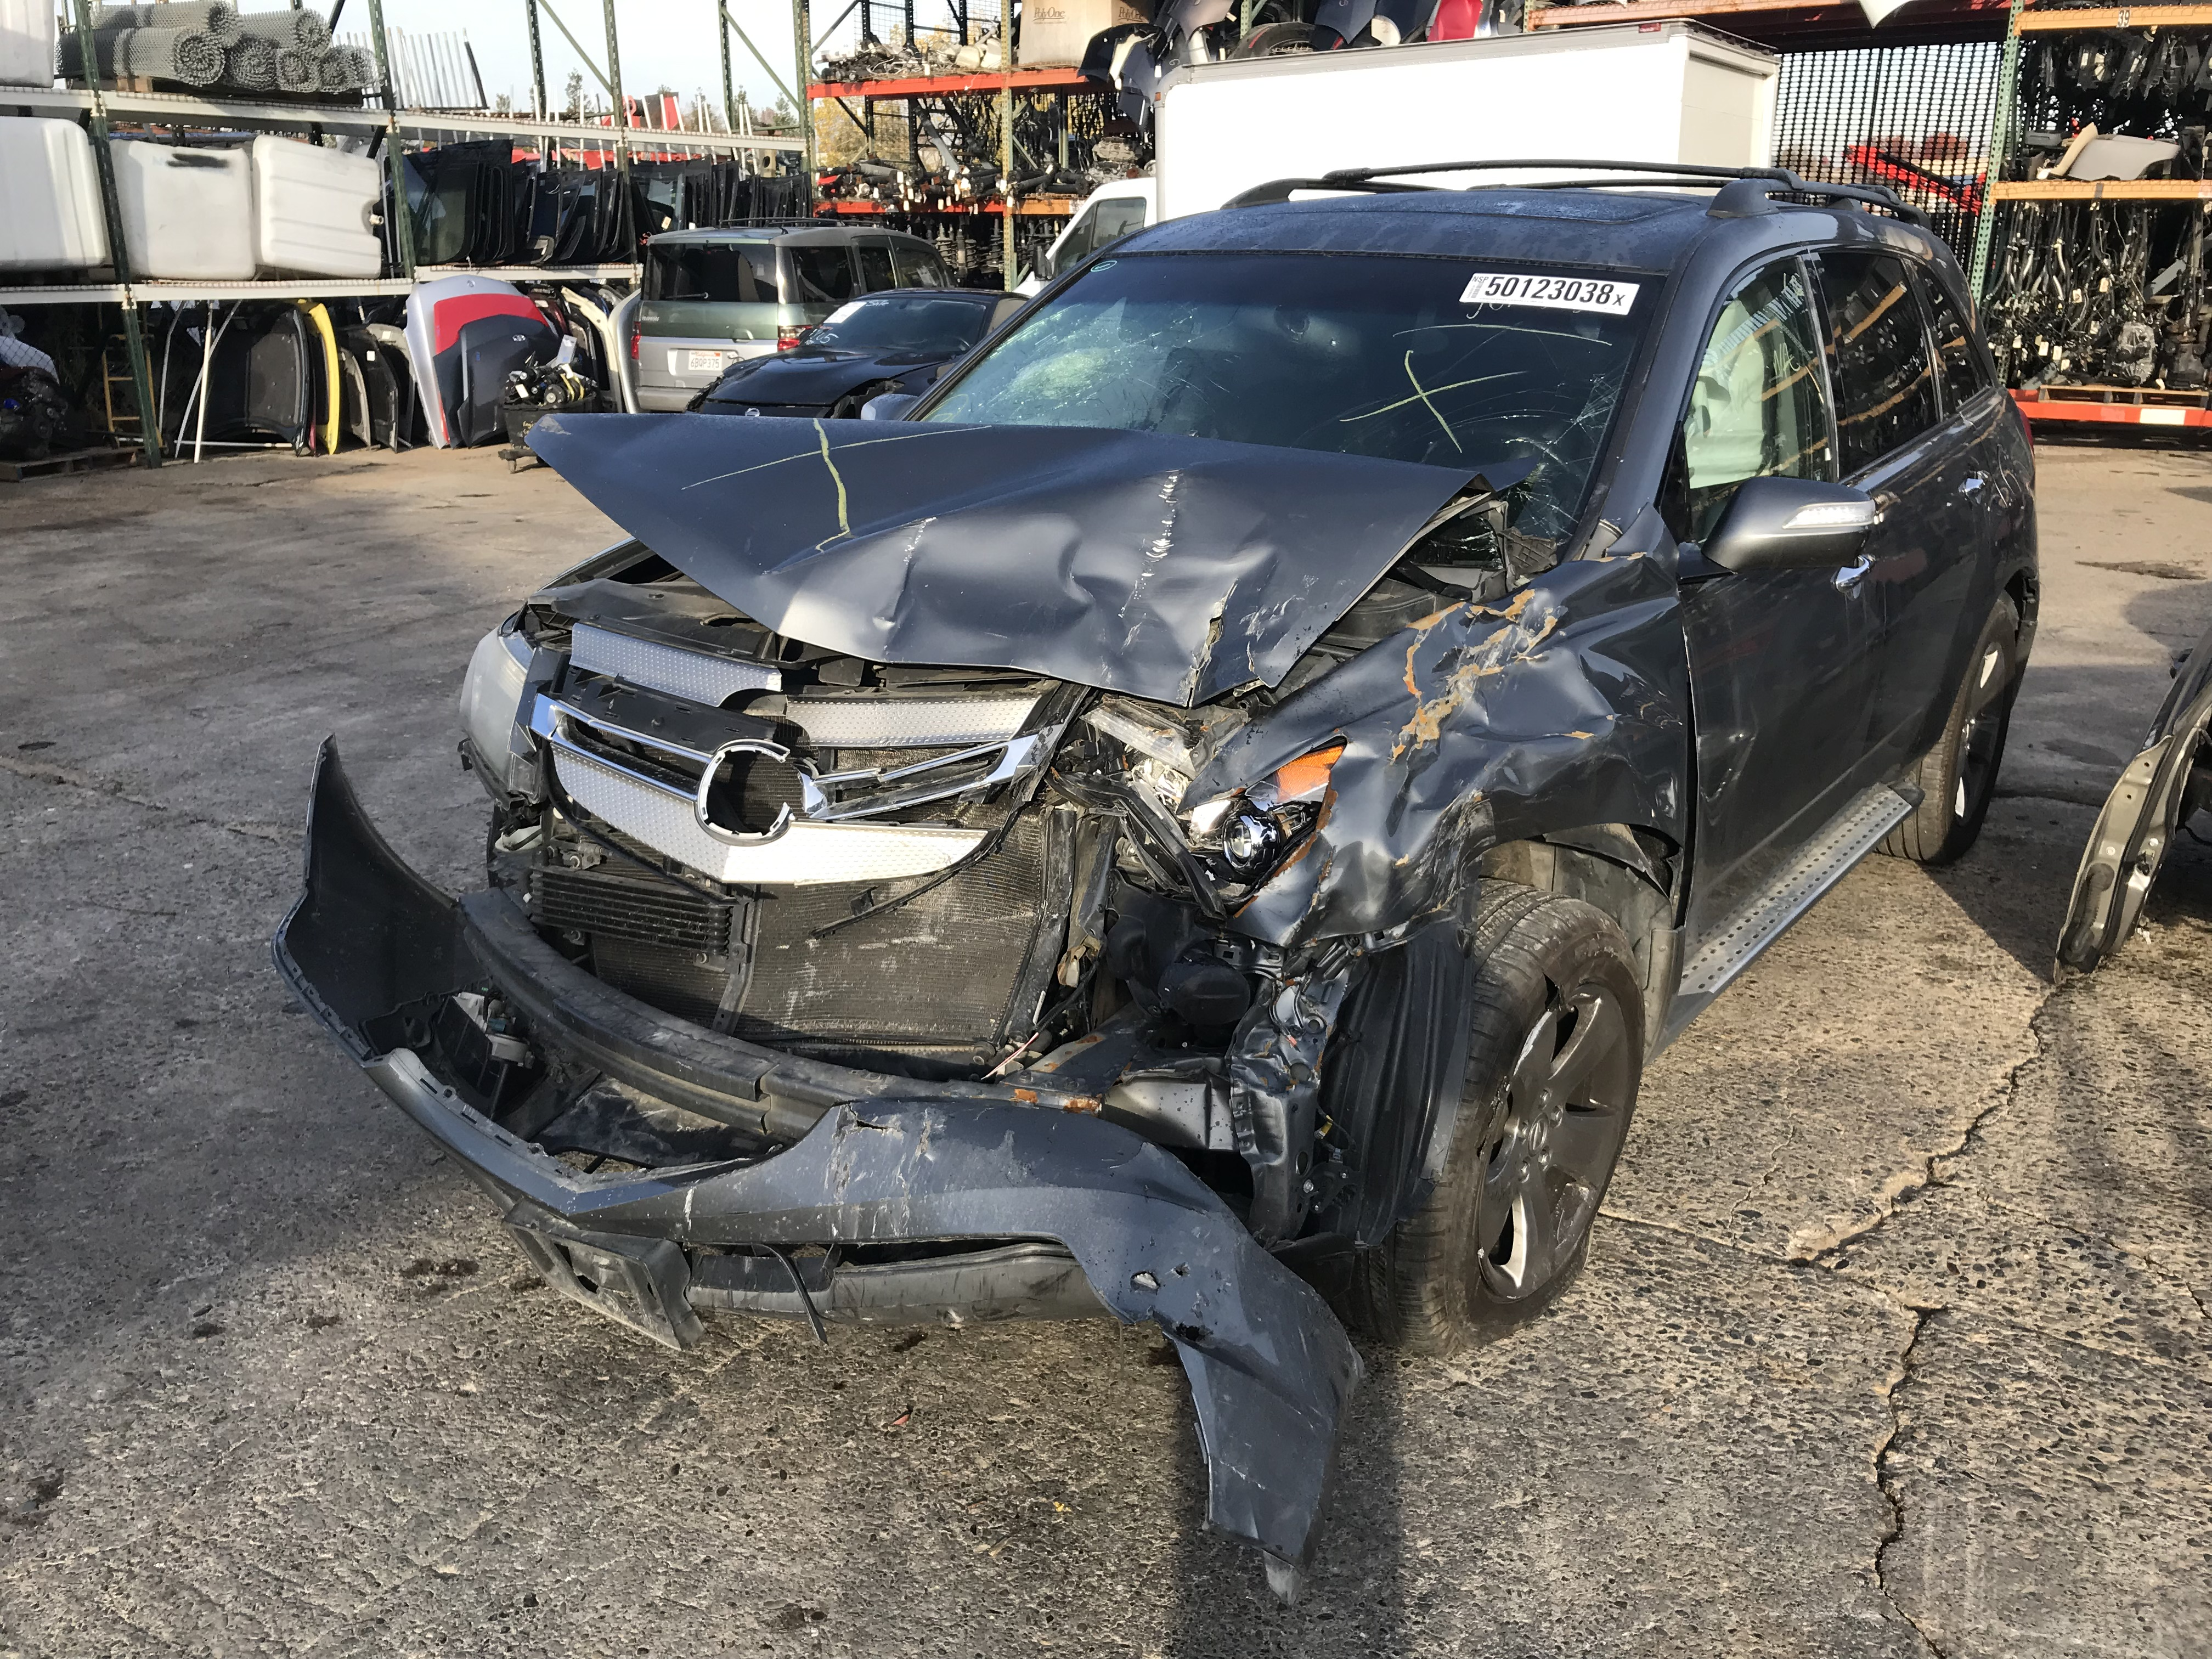 2009 Acura Mdx Parts For Sale Aa0726 Exreme Auto Parts